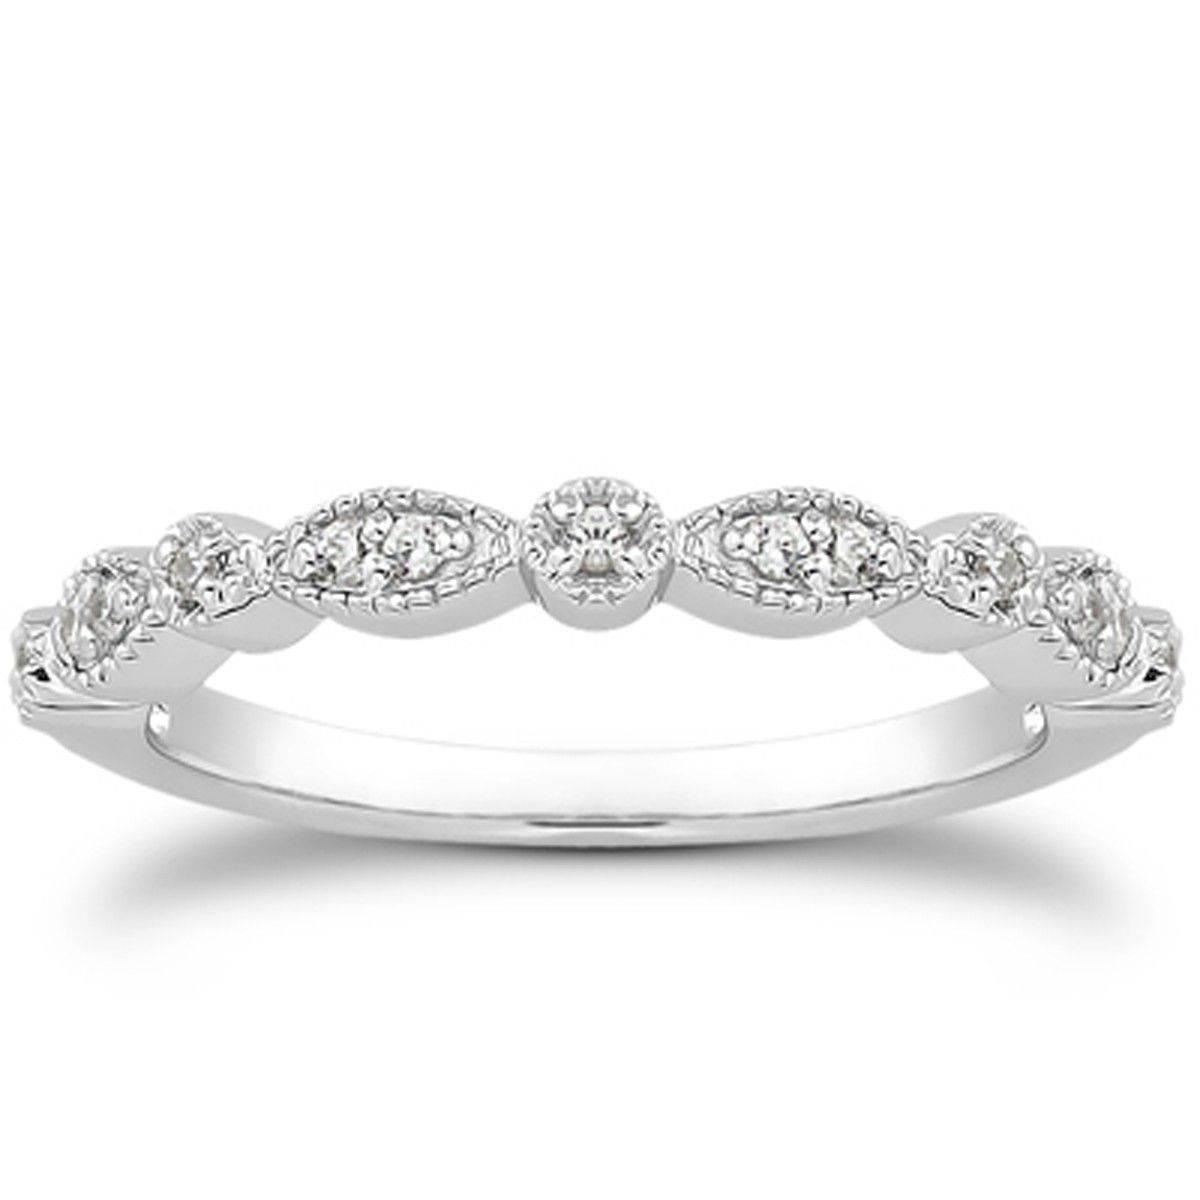 14K White Gold Vintage Look Fancy Pave Diamond Milgrain Wedding Ring Regarding Most Up To Date Diamond And Milgrain Anniversary Bands In 10K White Gold (View 5 of 15)